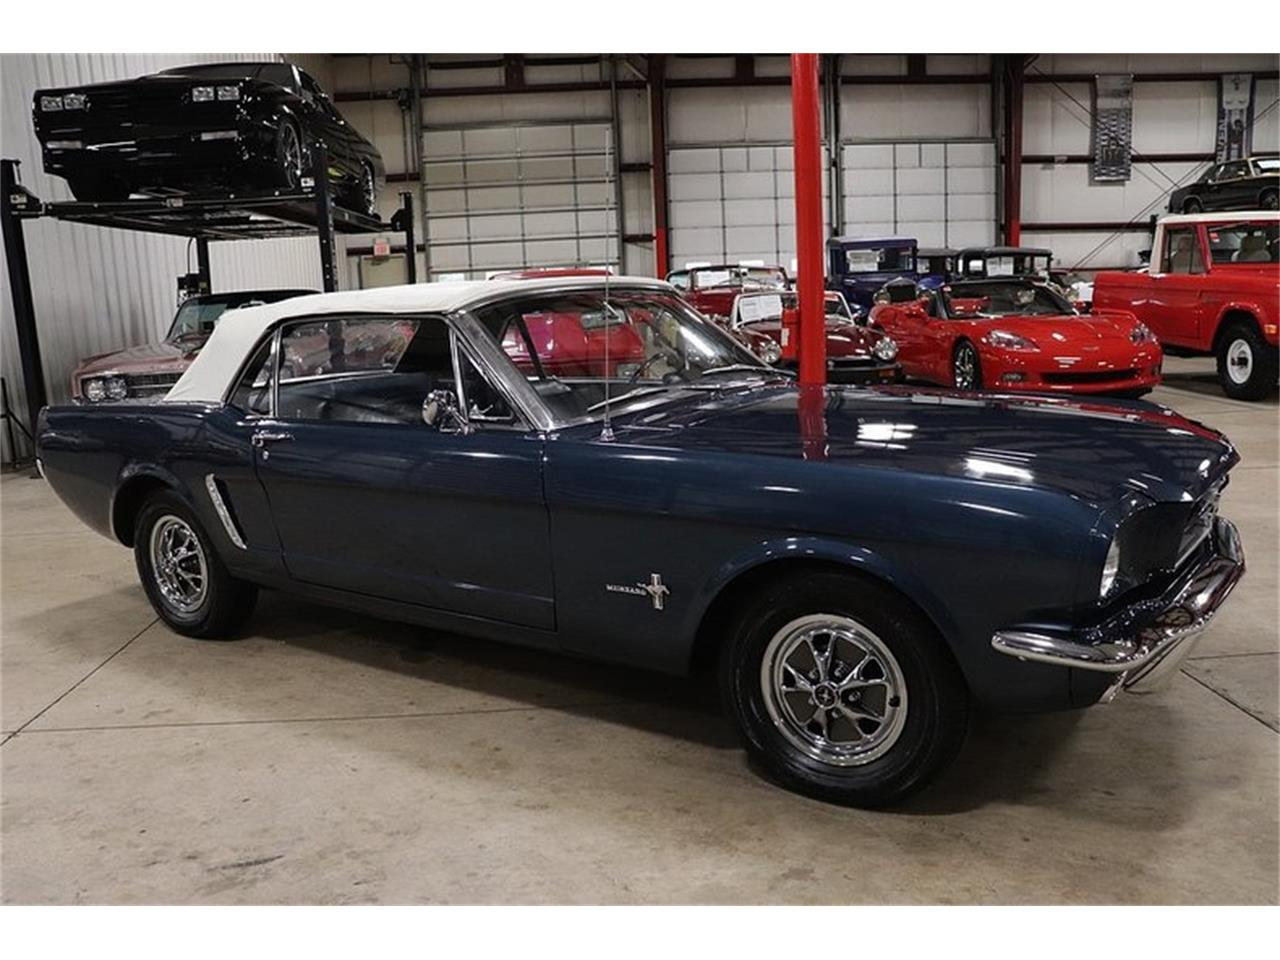 Large picture of 1965 mustang located in michigan ox25